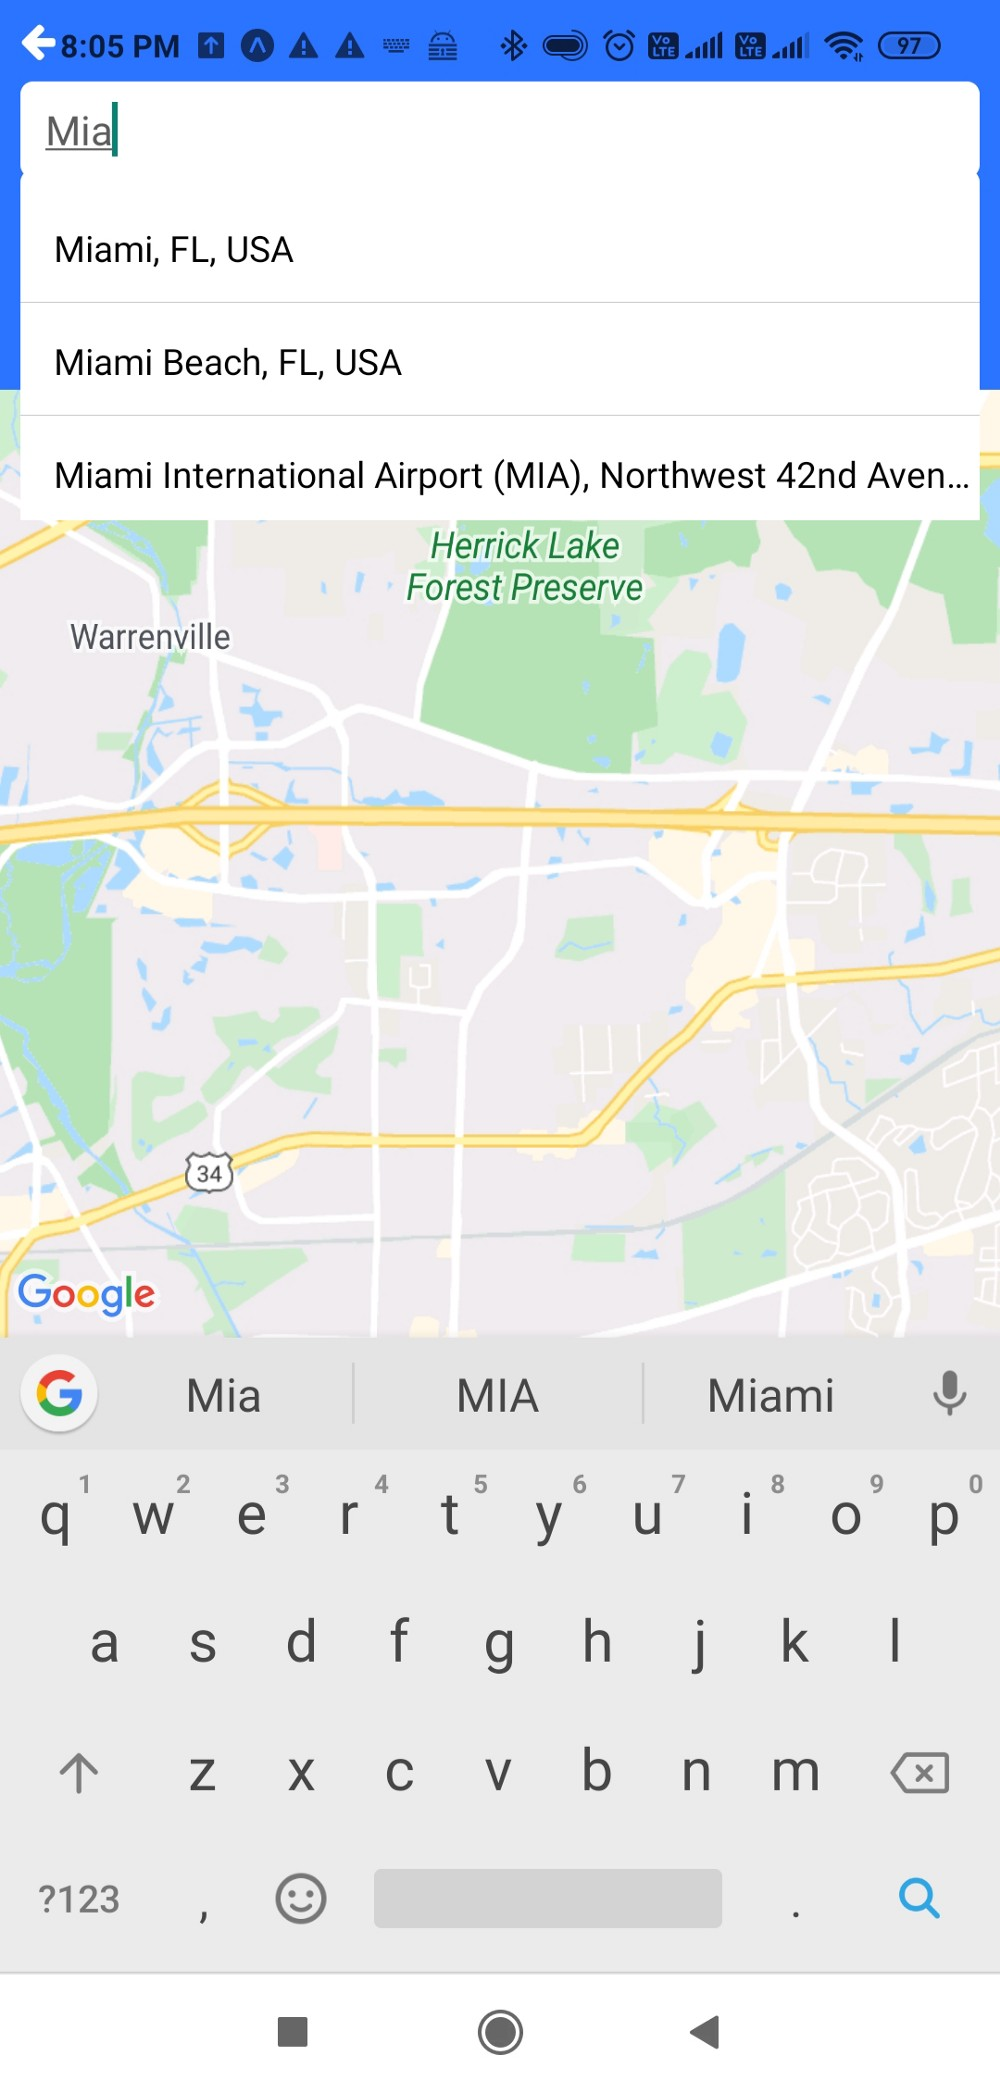 Screeshot of the Corus app showing the React Native Maps, Datetime picker, and Google Places Autocomplete in action